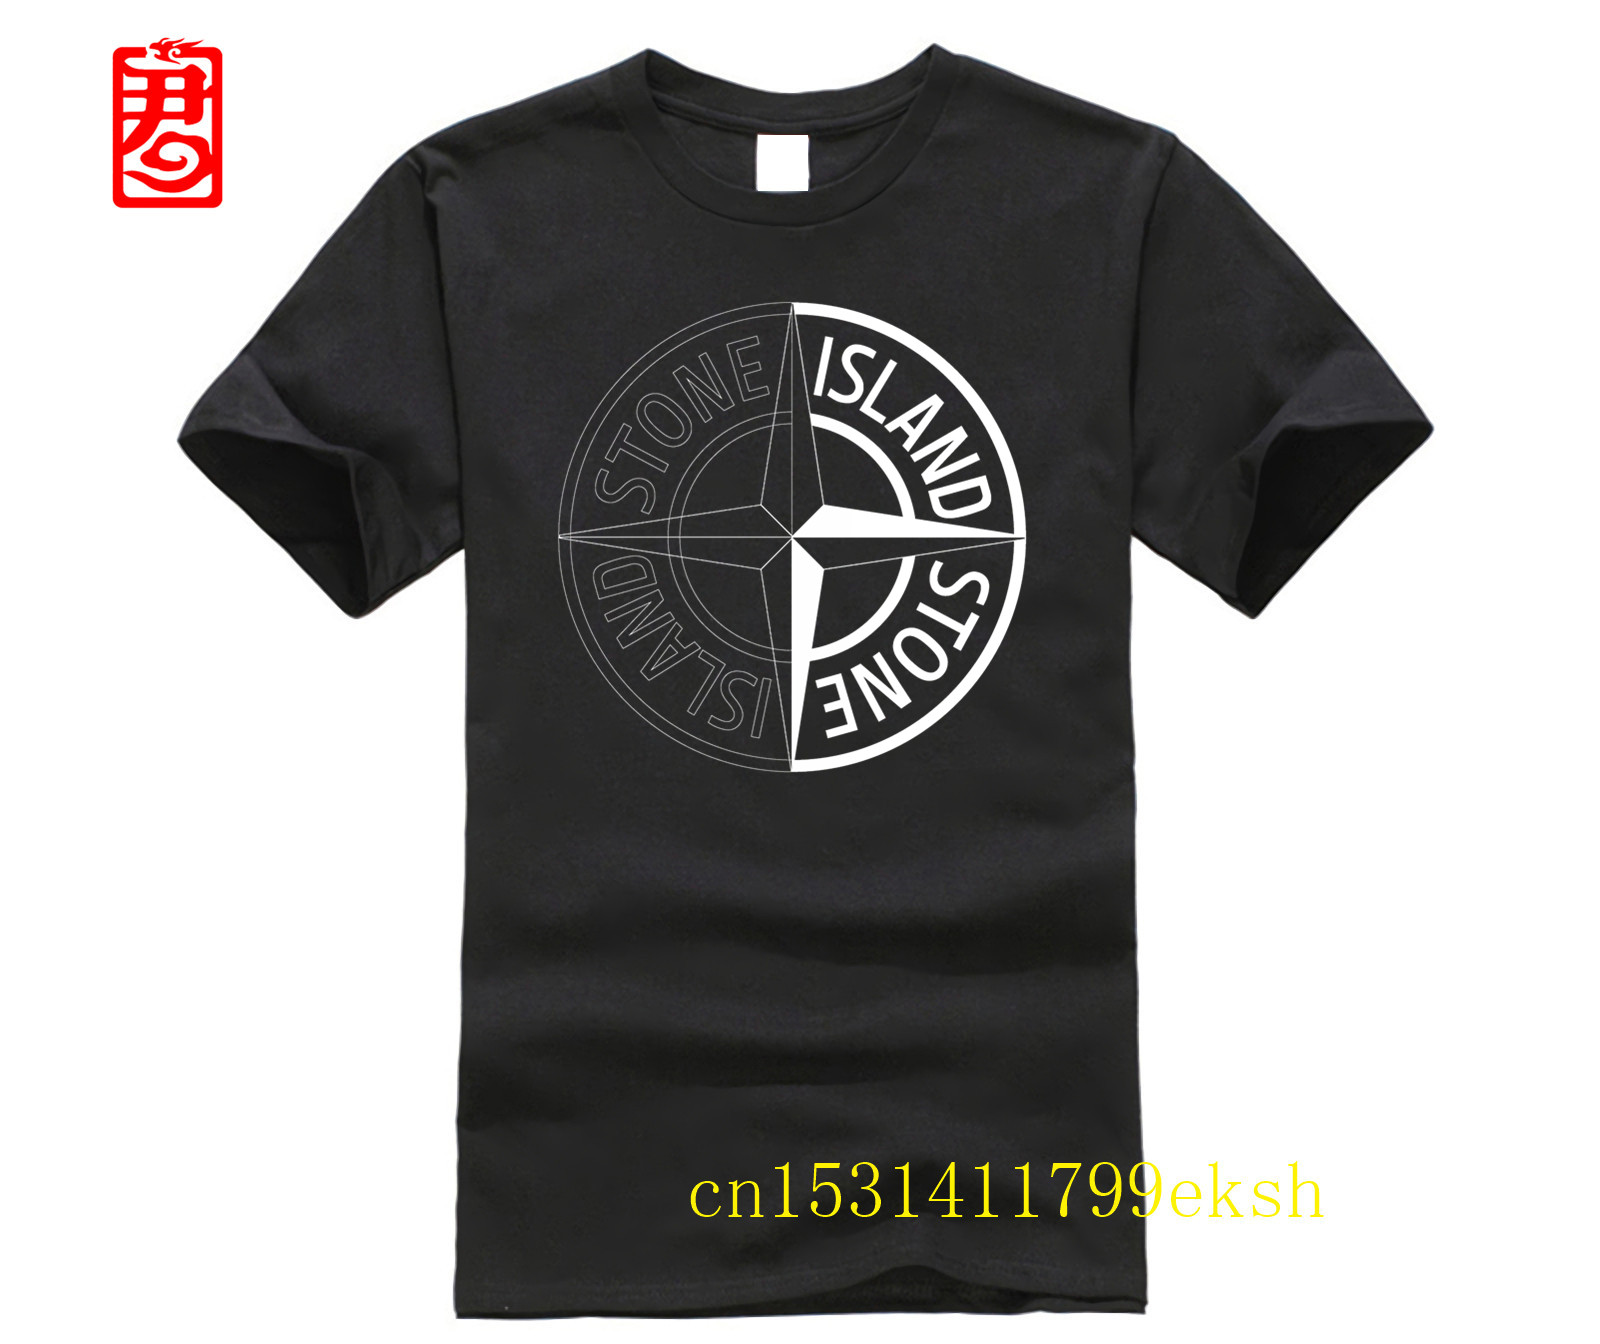 Stone Men Tshirt Funny Fashion T Shirts Cool Shirt For Men Men Casual Top Harajuku T-shirt Island TEE